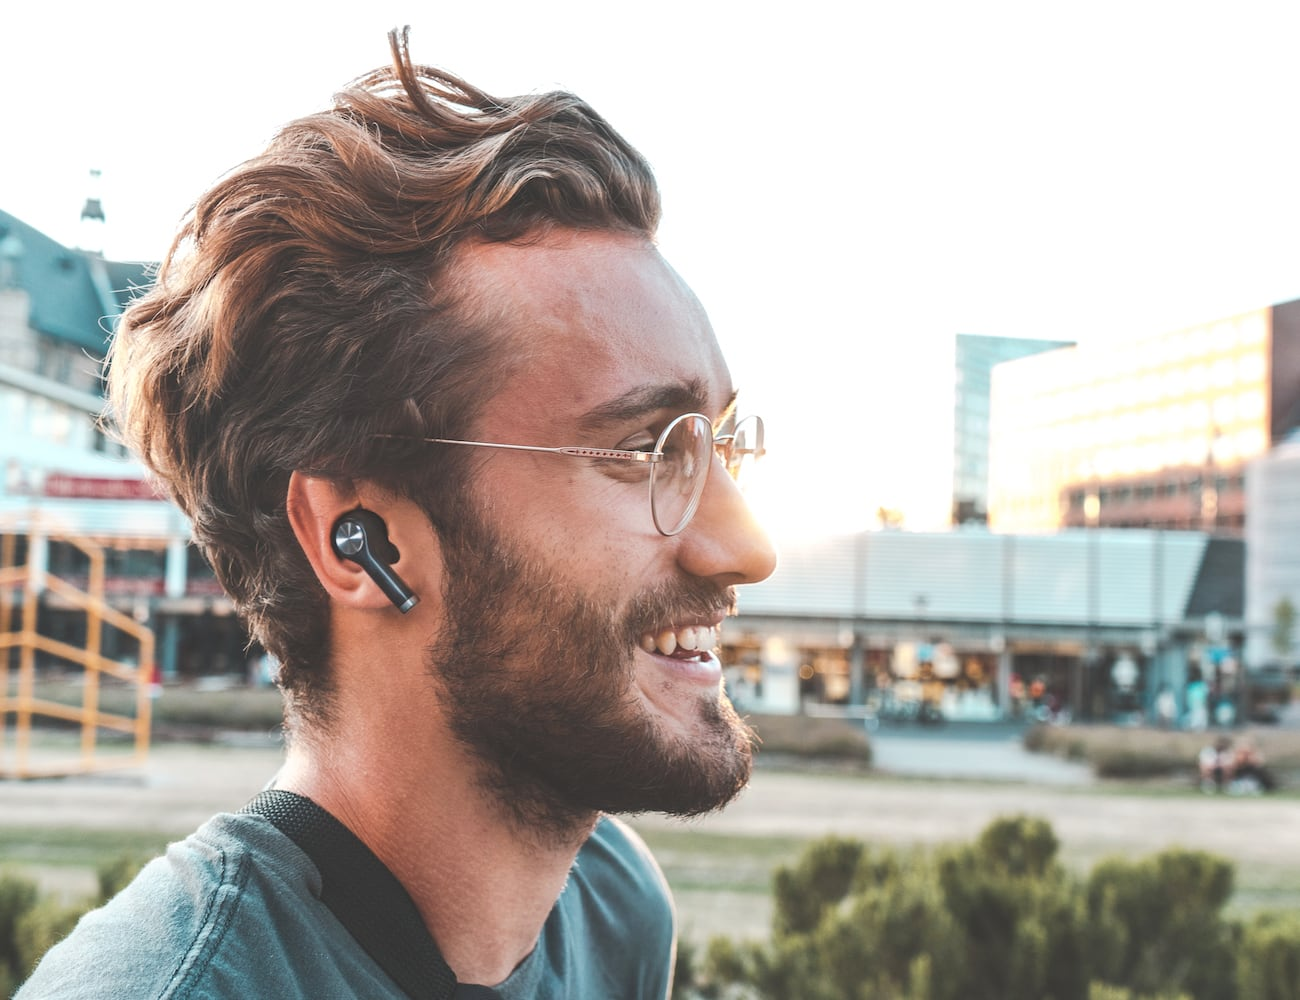 FITO Tap Pro Advanced Translation Earphones supports over 30 languages